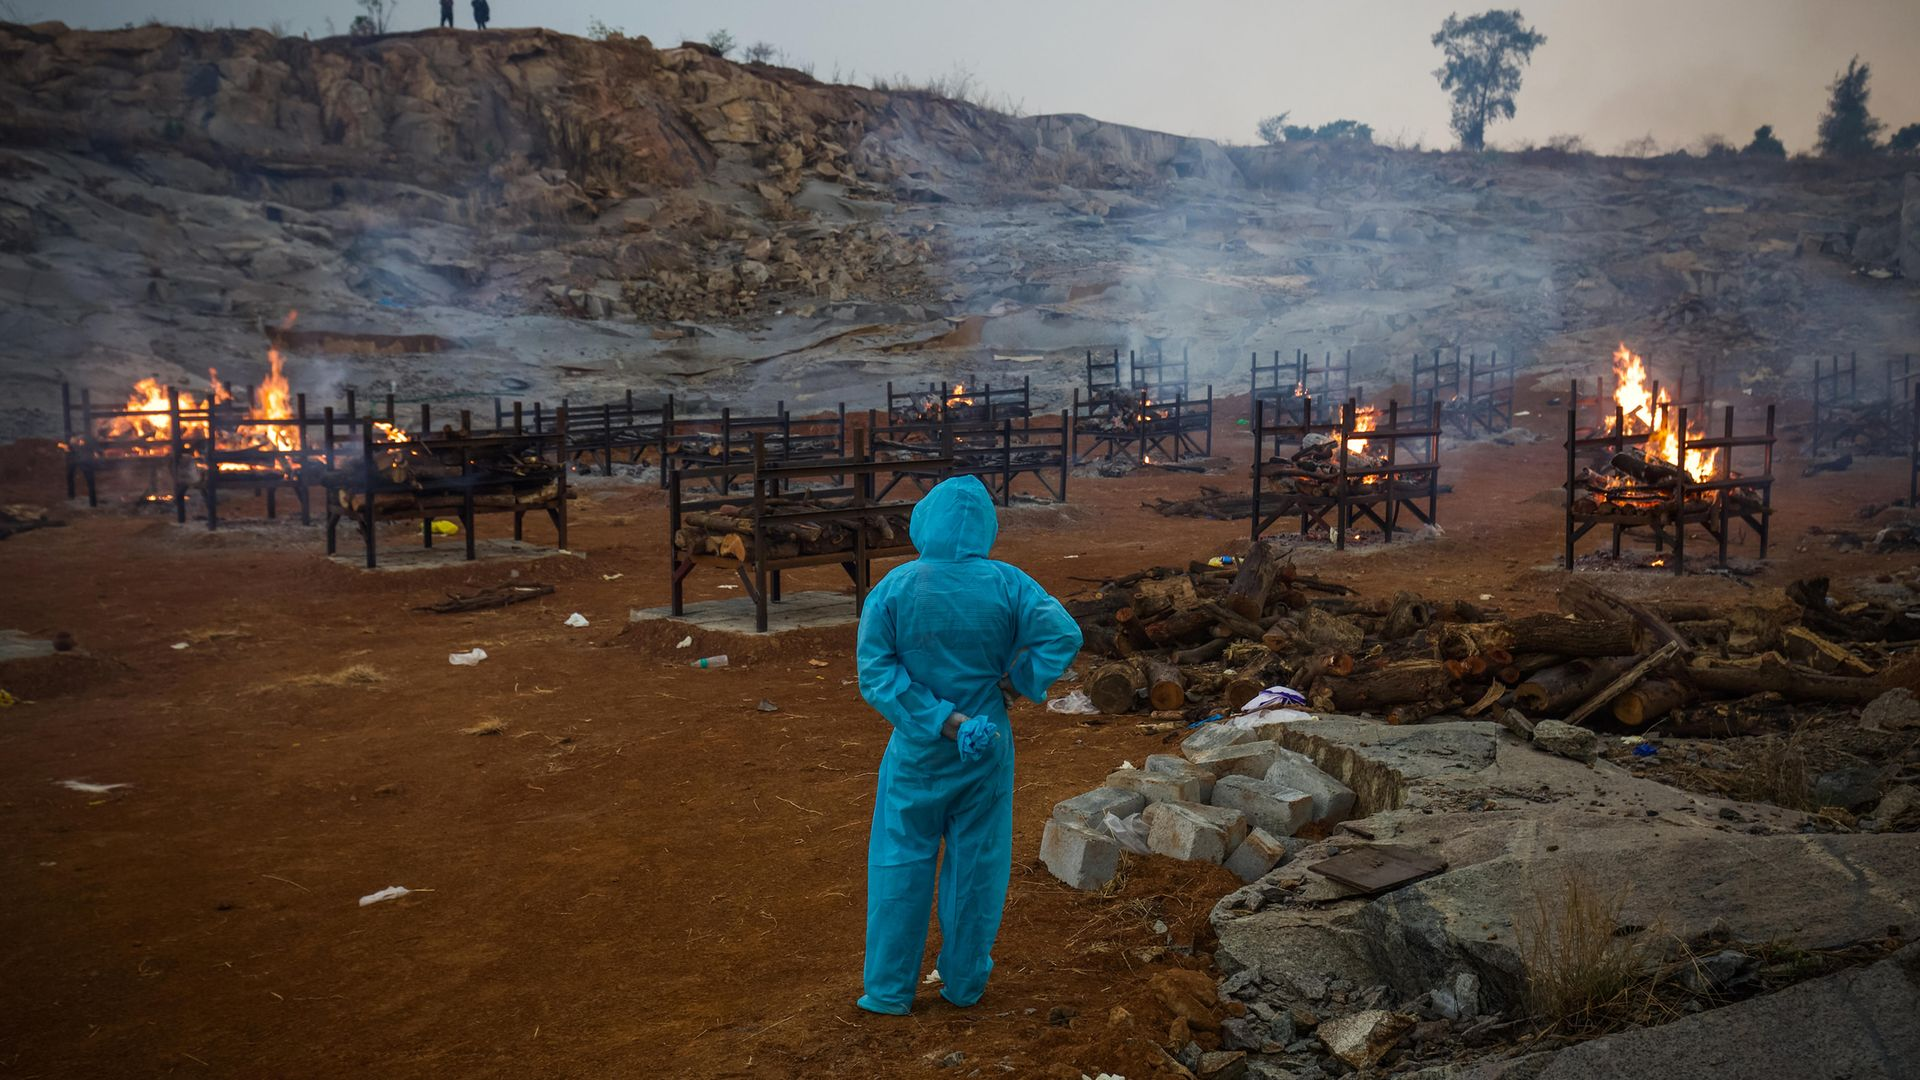 A man watches mass cremations in a disused granite quarry repurposed to cremate those who have died from Covid in Bengaluru, India - Credit: Getty Images